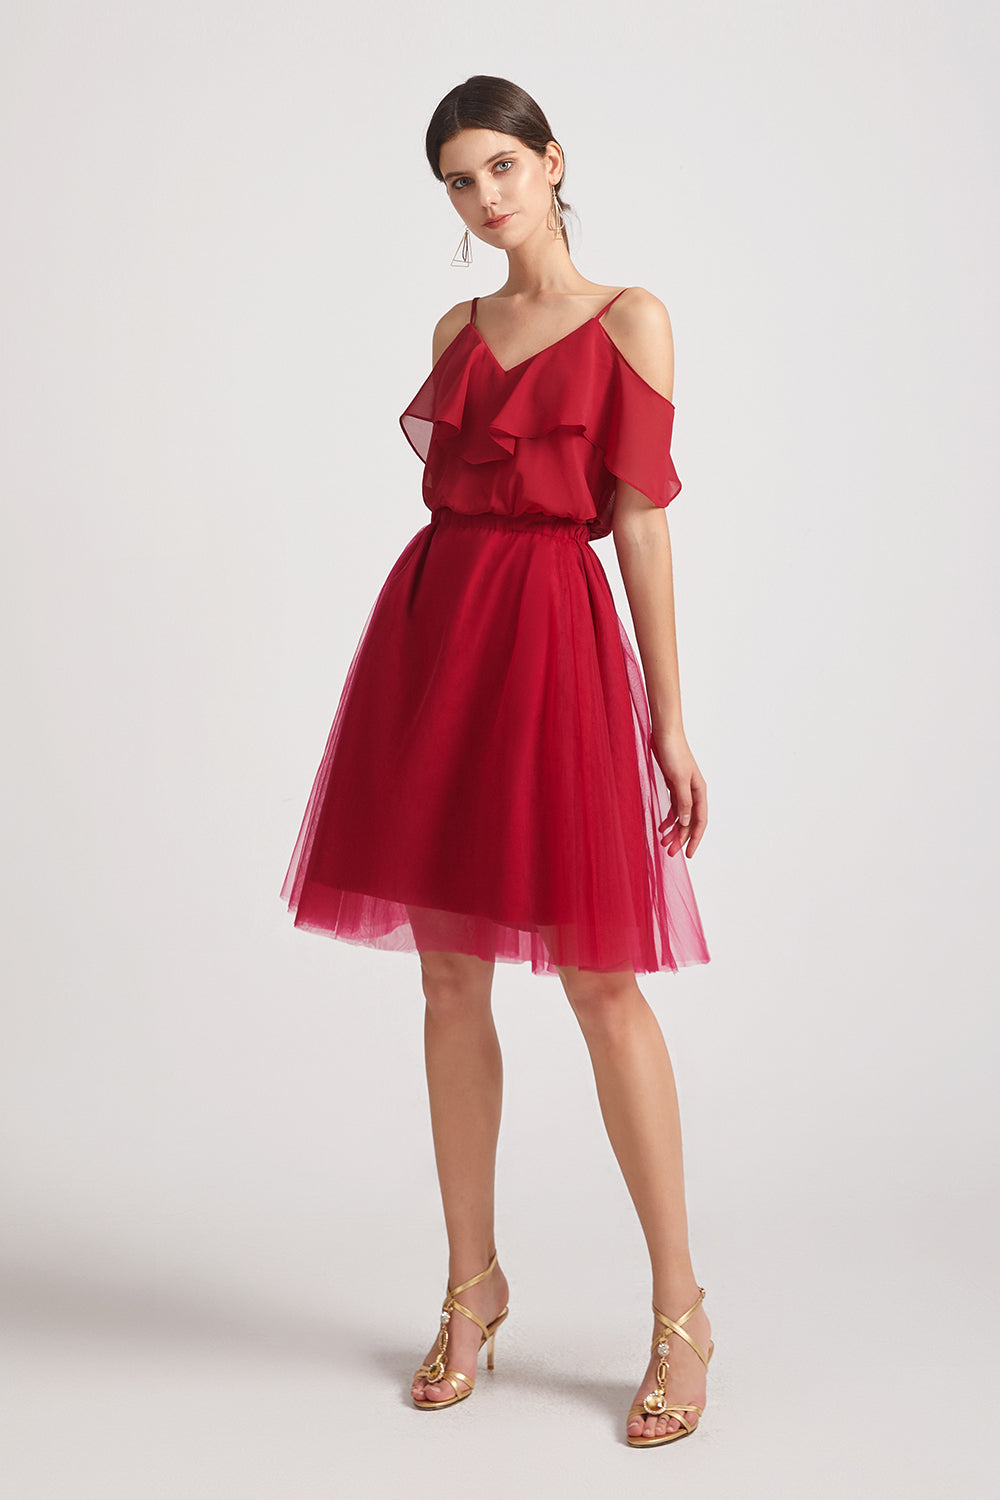 red spaghetti straps chiffon bridesmaid dresses